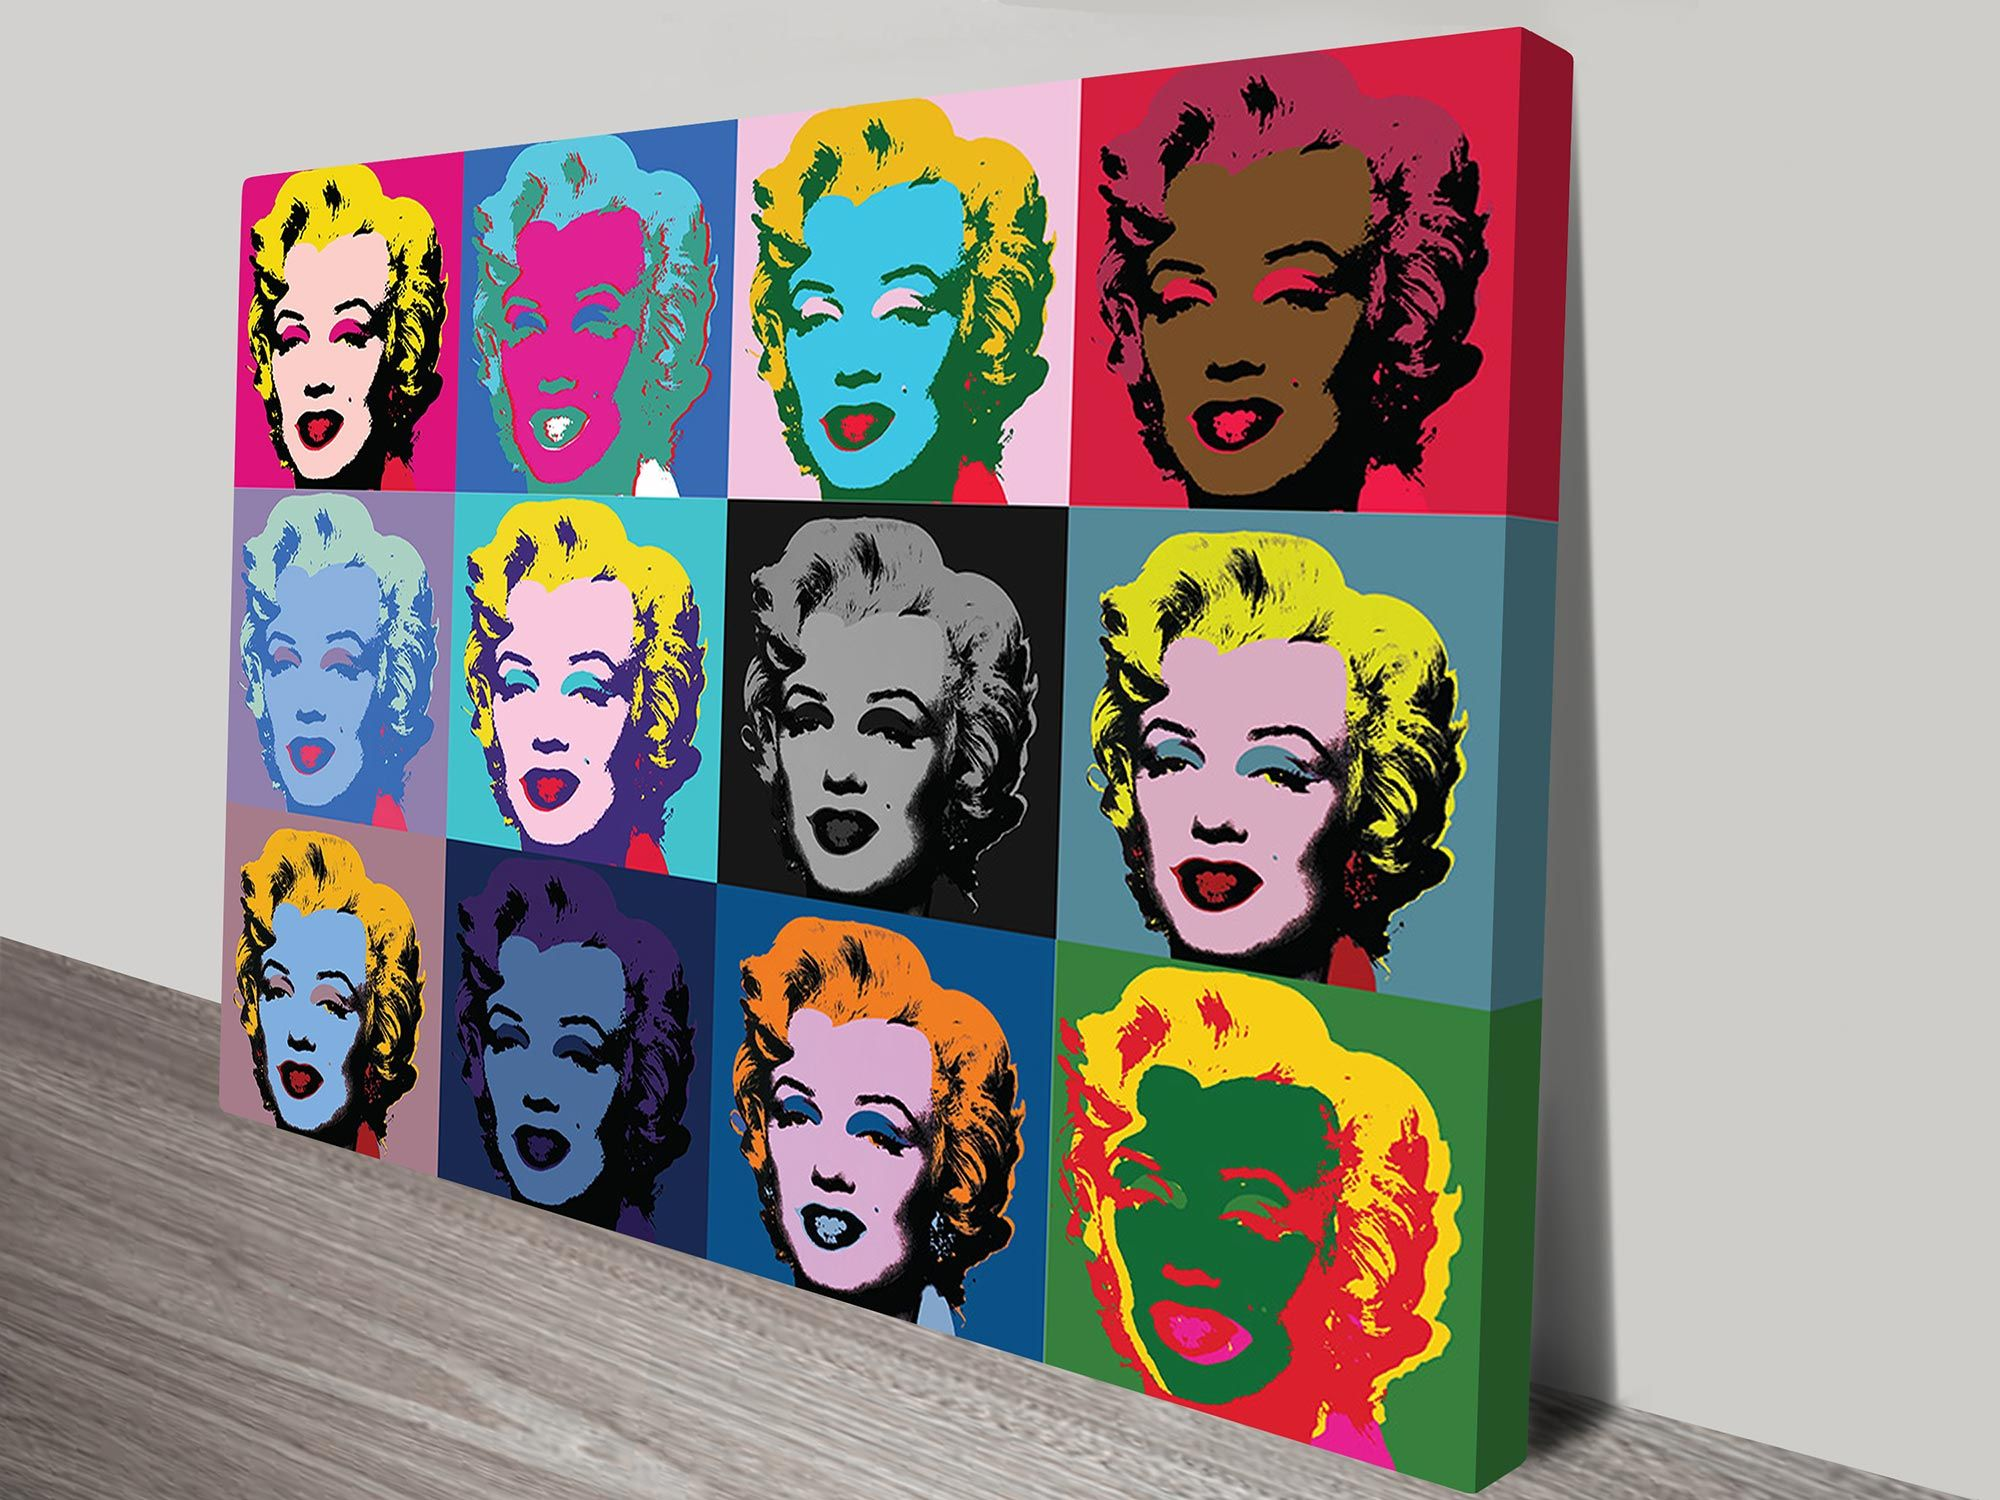 andy warhol s marilyn monroe Home artists  andy warhol prints and paintings  portraits of marilyn monroe by andy warhol portraits of marilyn monroe by andy warhol printmaking, and in particular screenprint, was the basic medium for andy warhol's celebrated work on canvas and paper.